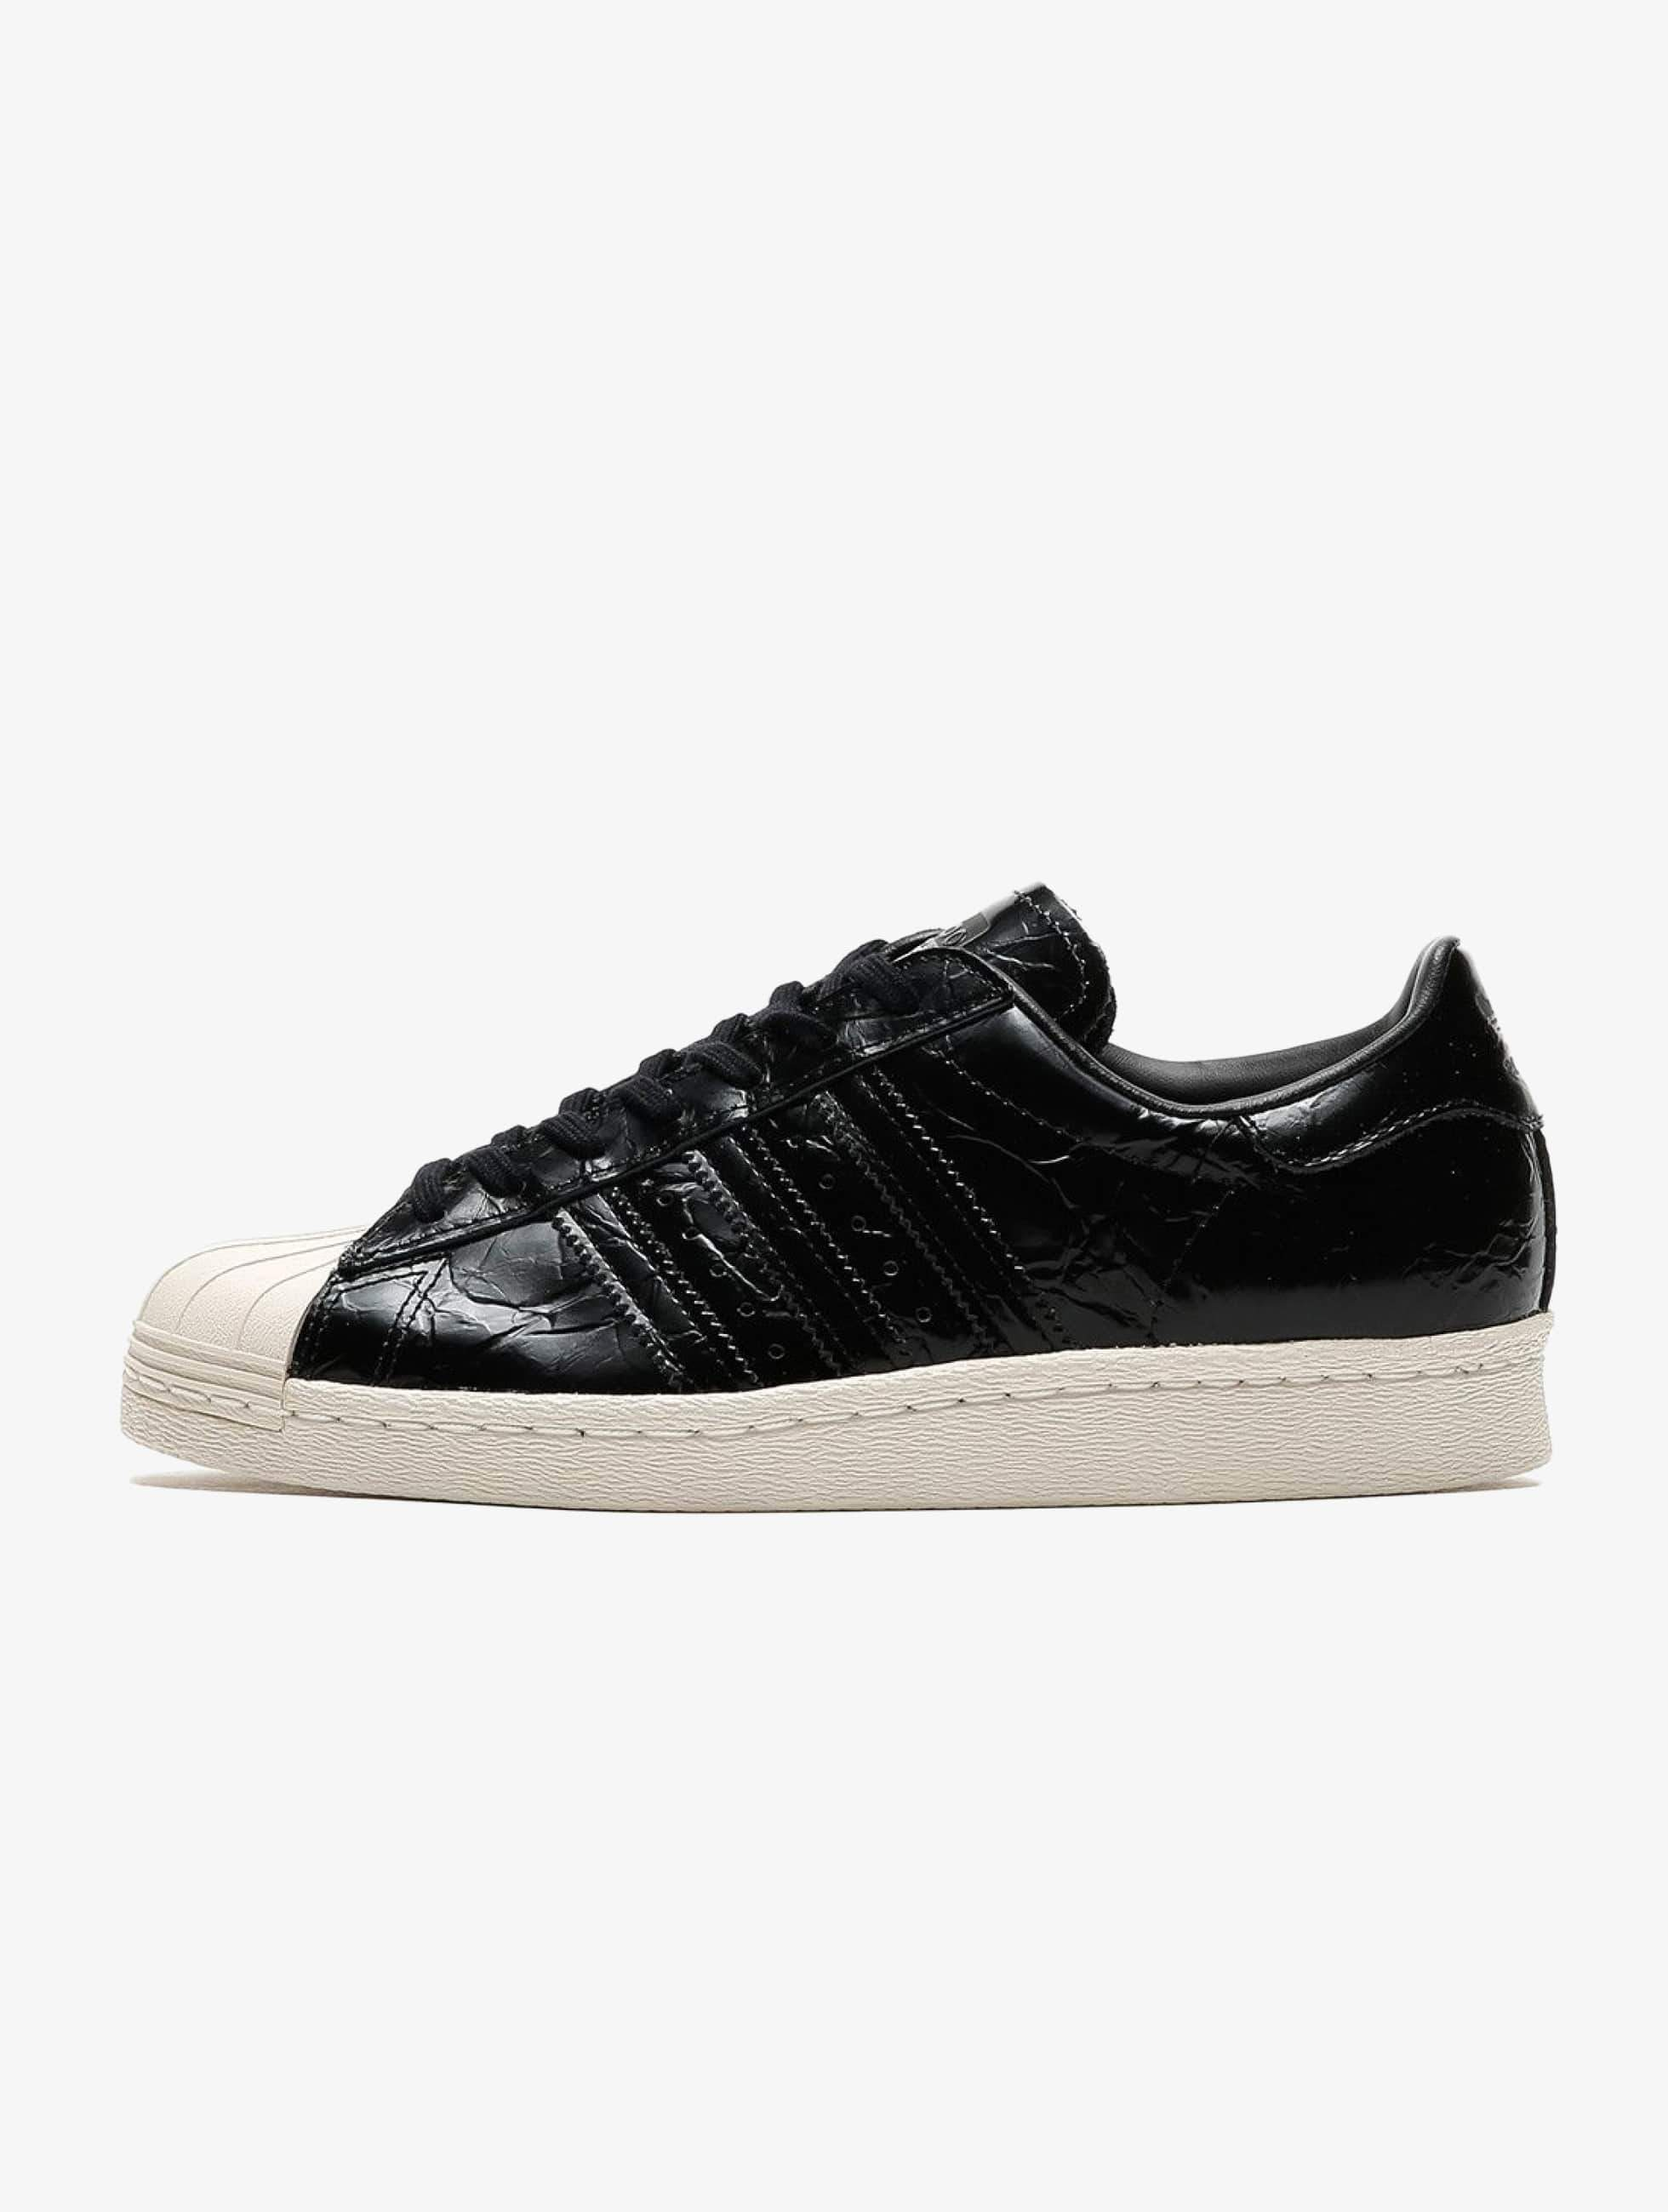 Adidas Superstar 80s W Sneakers Black